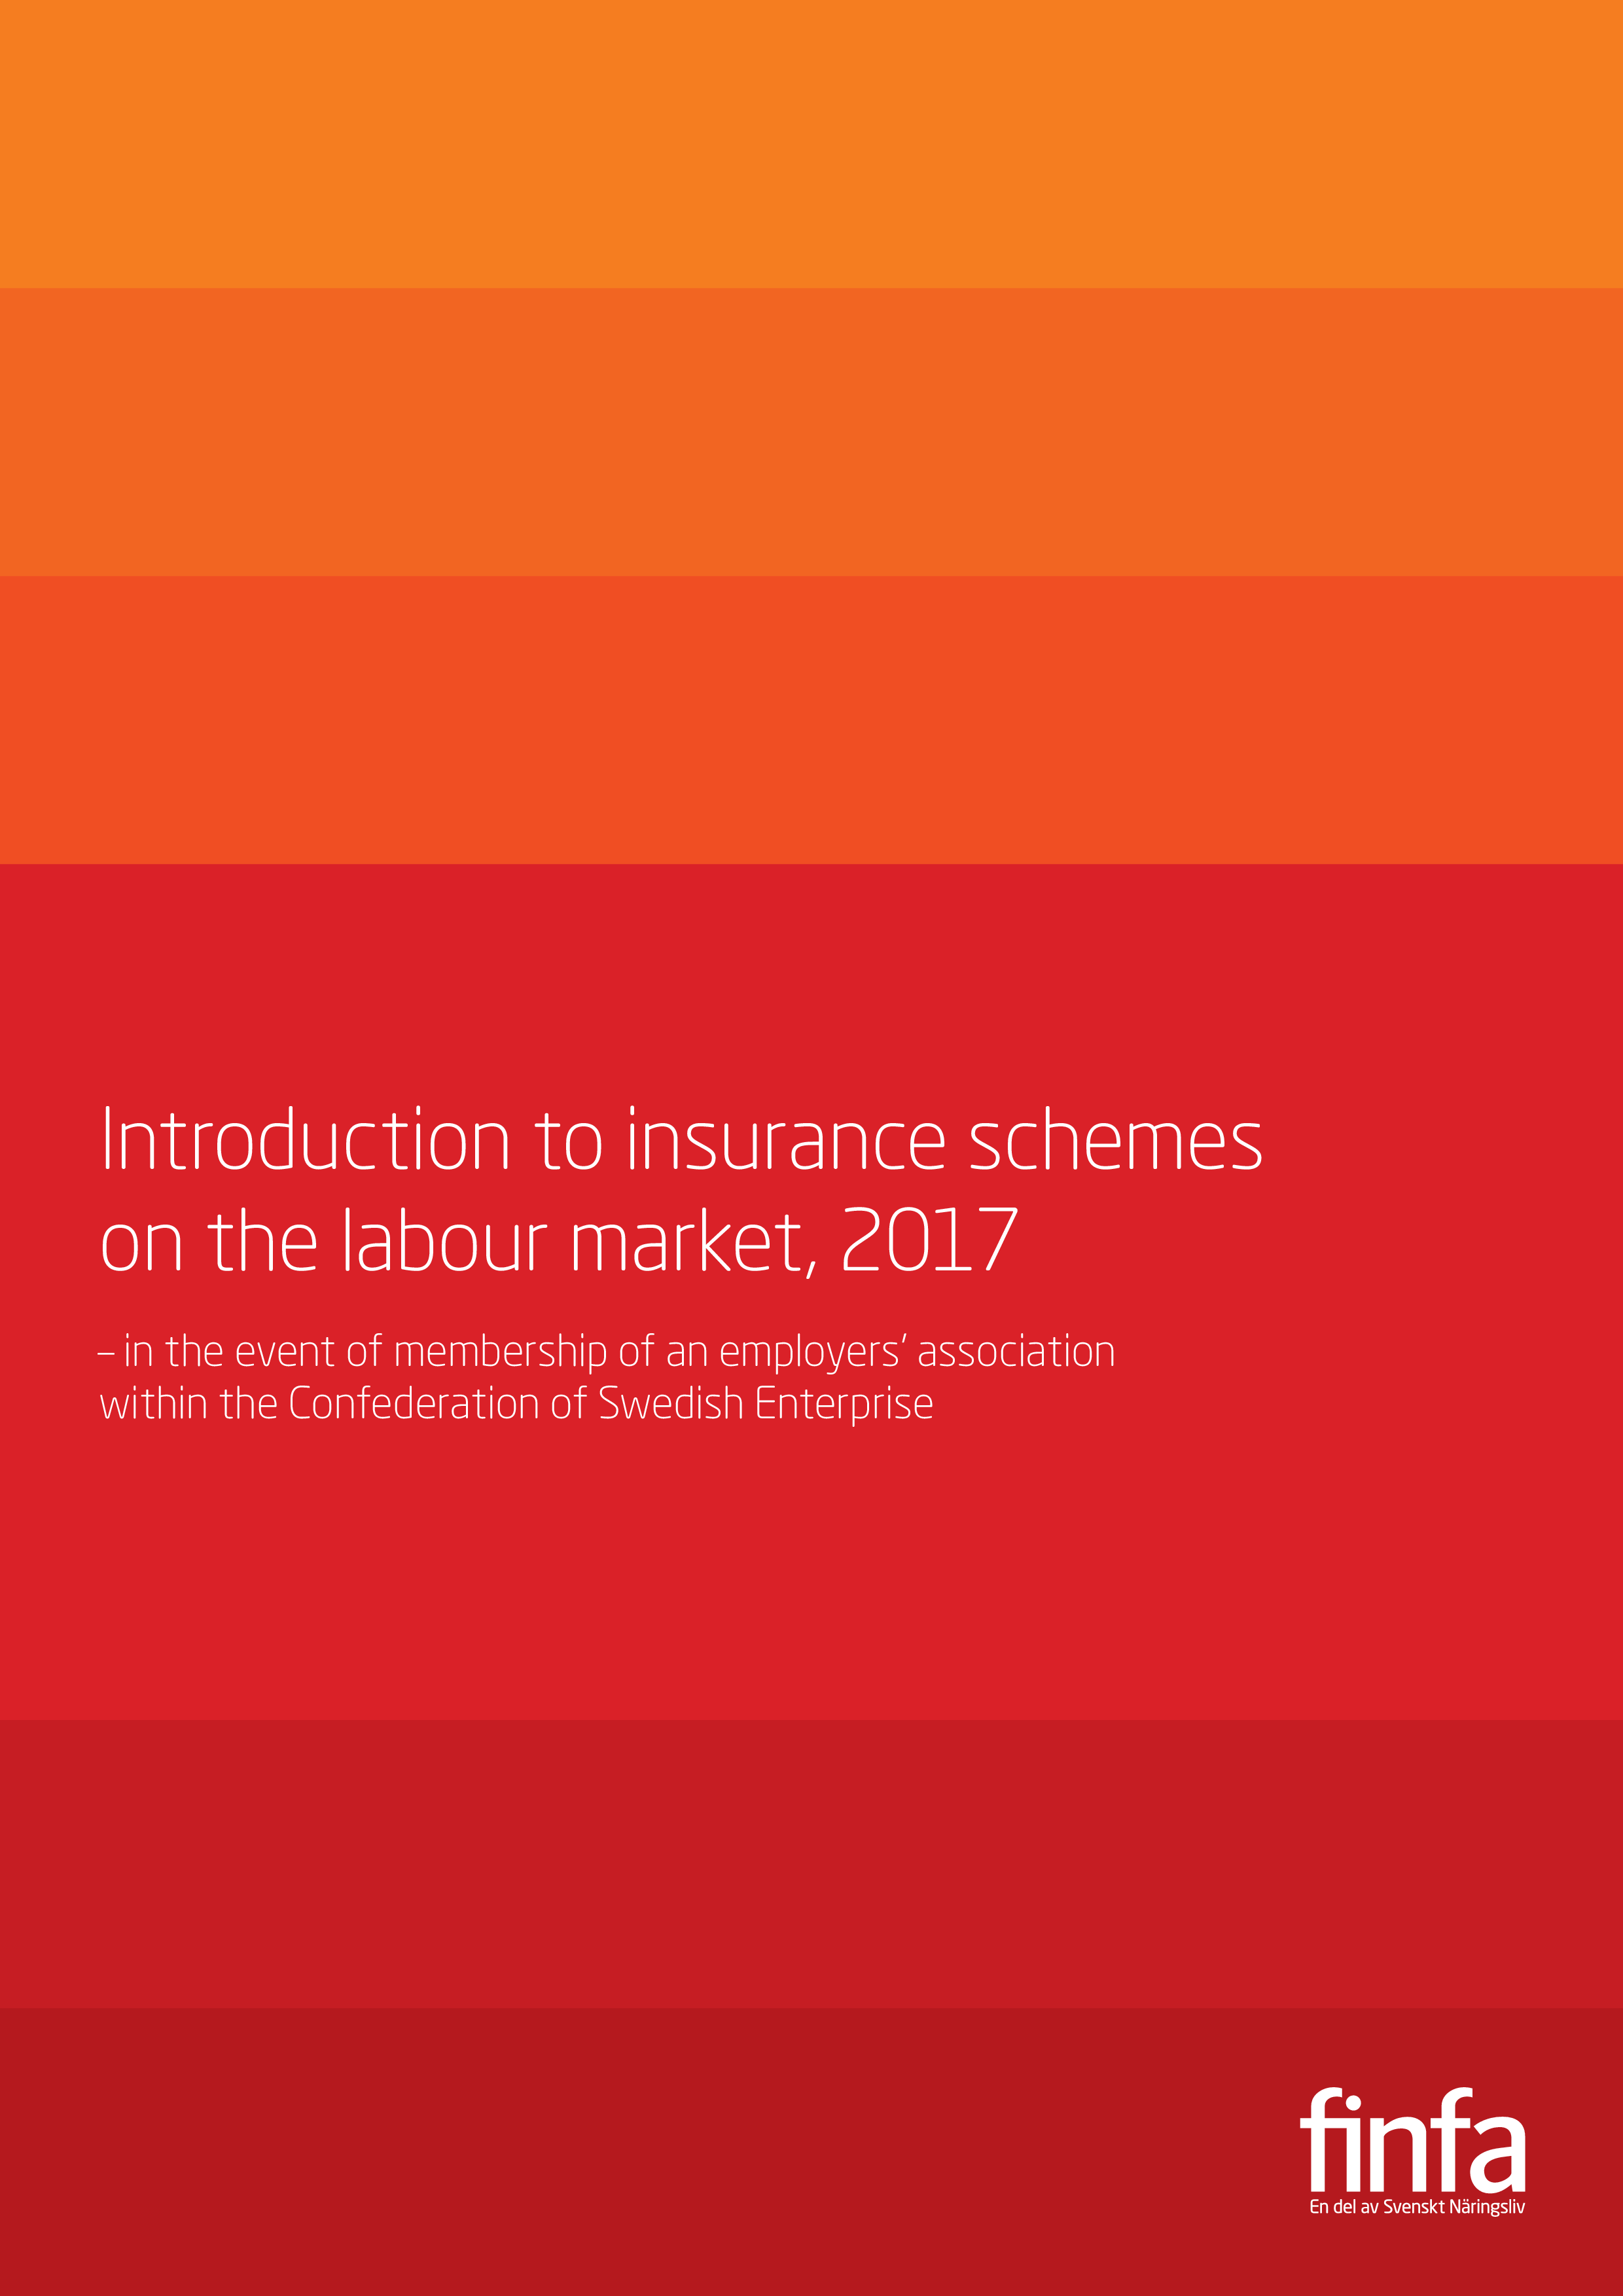 Introduction_to_insurance_schemes_2017.pdf